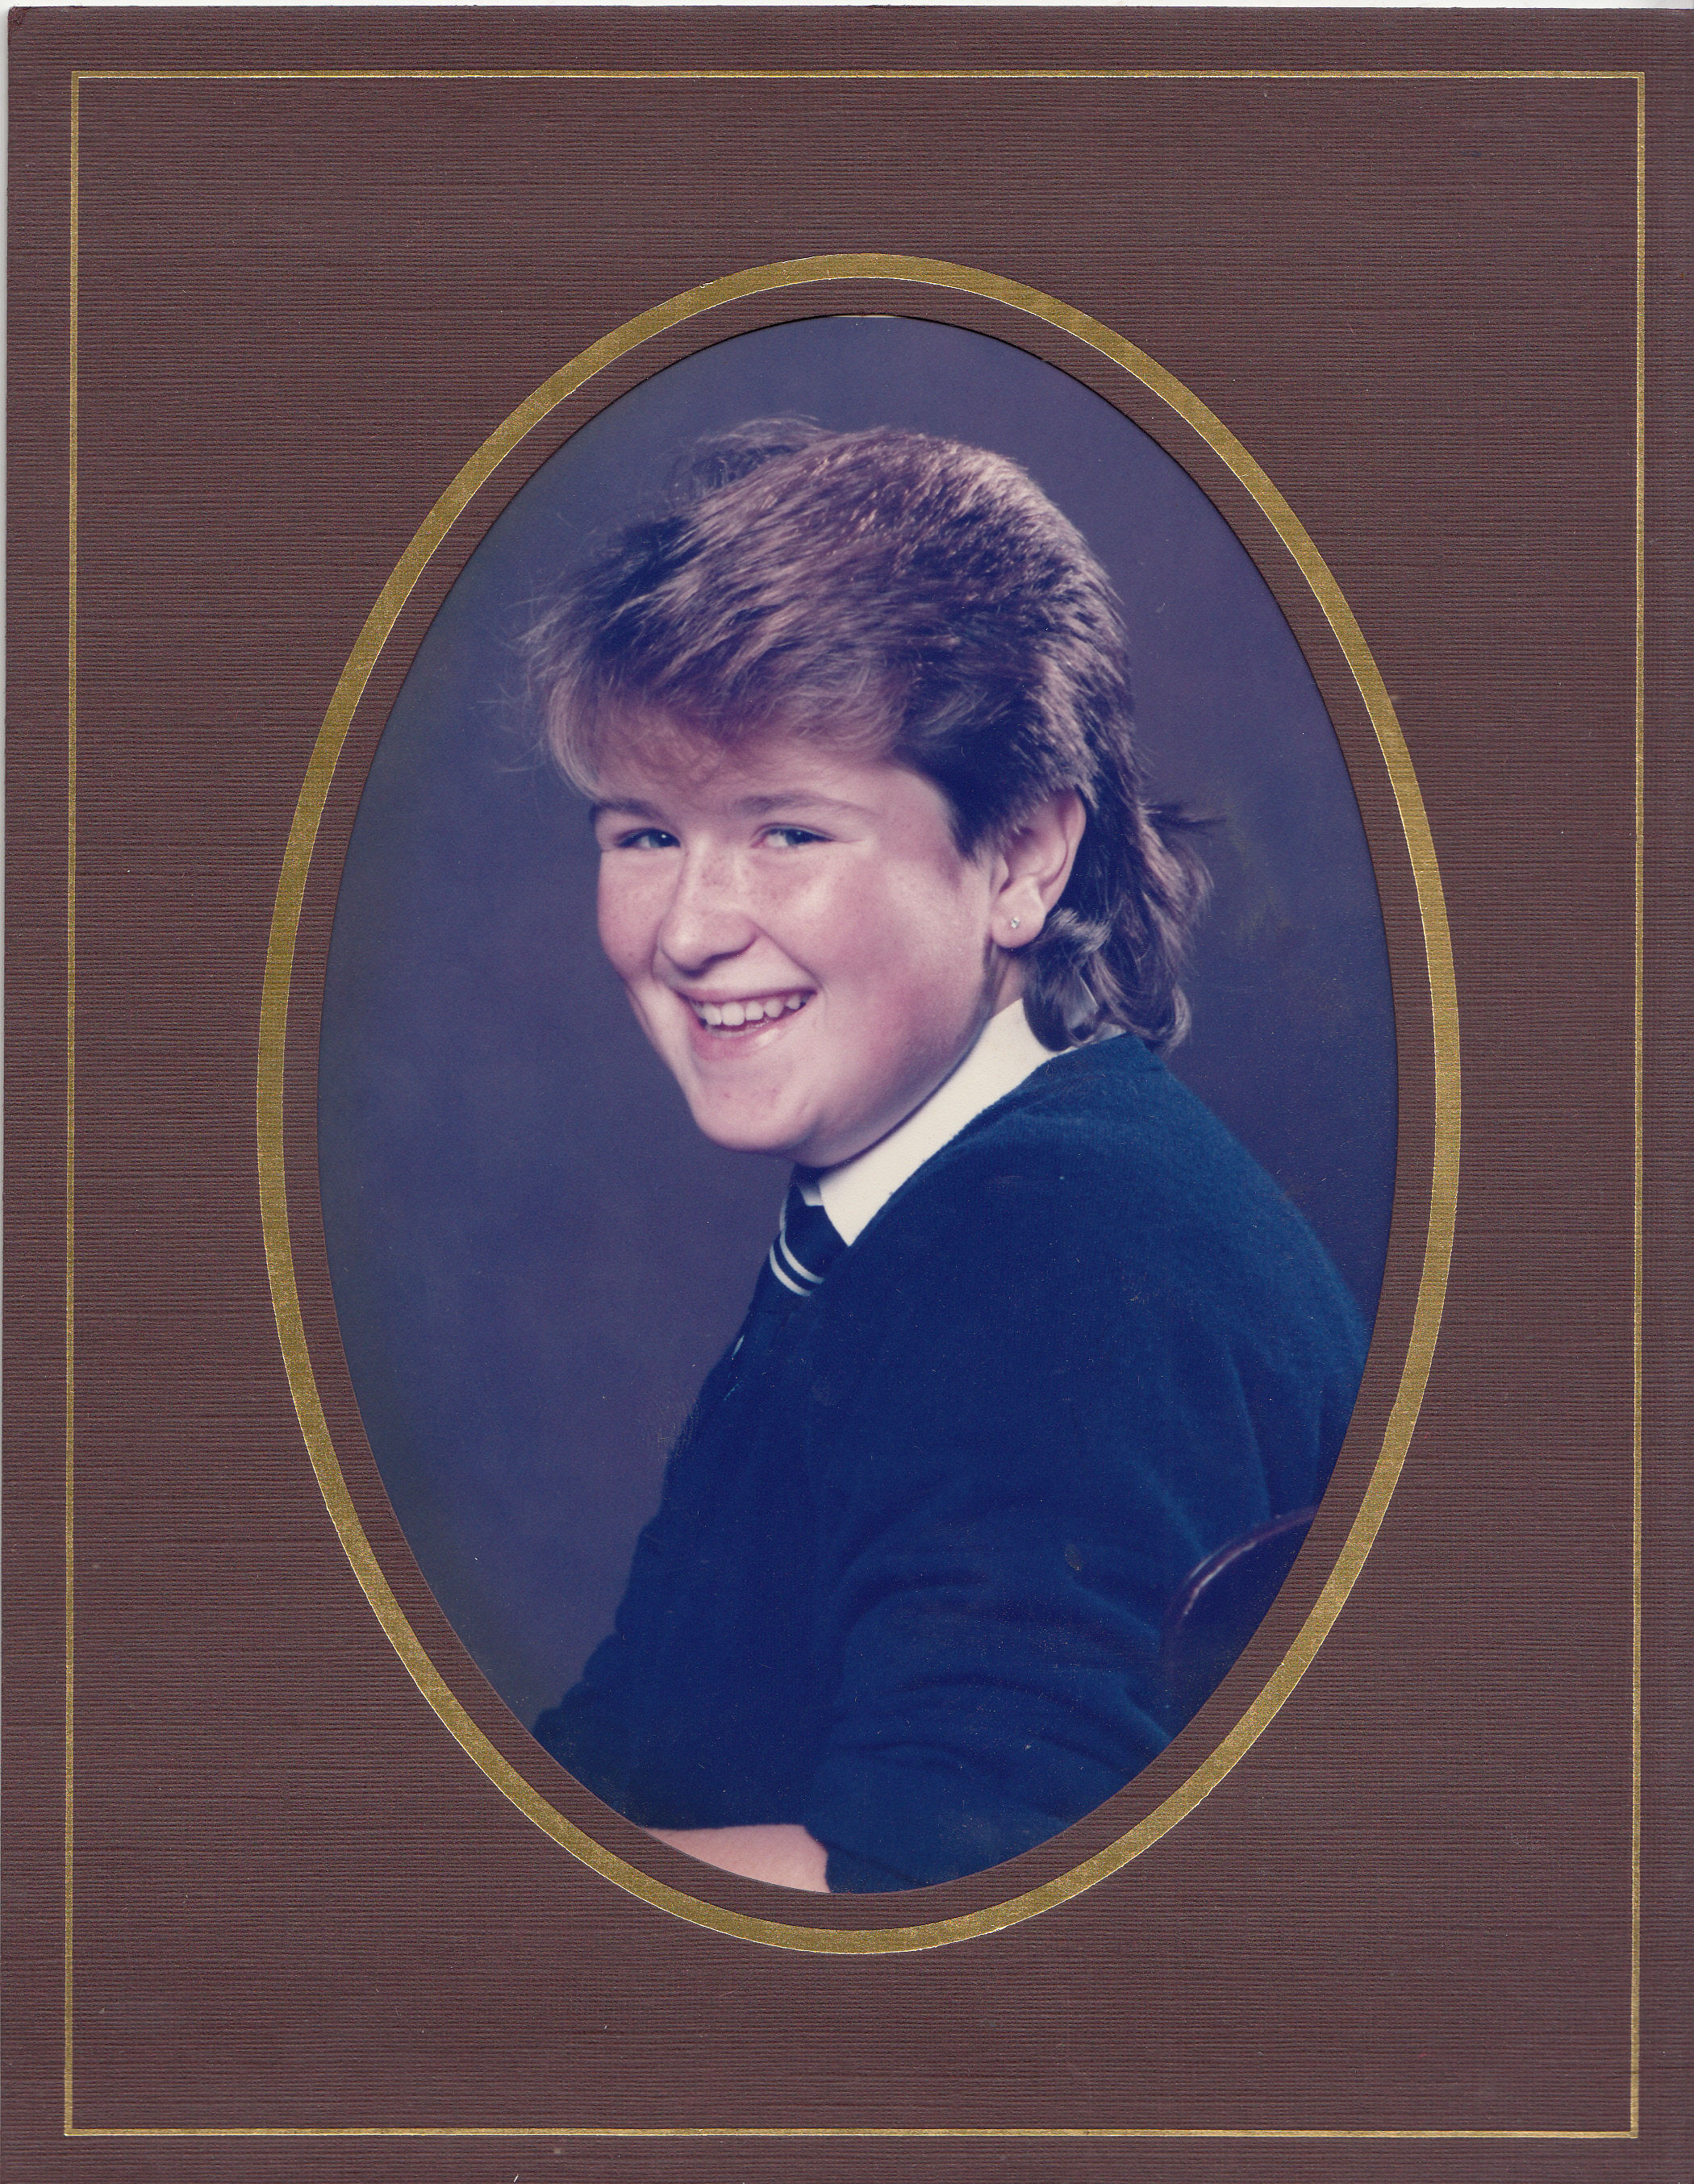 Denbigh High school photo - 1985